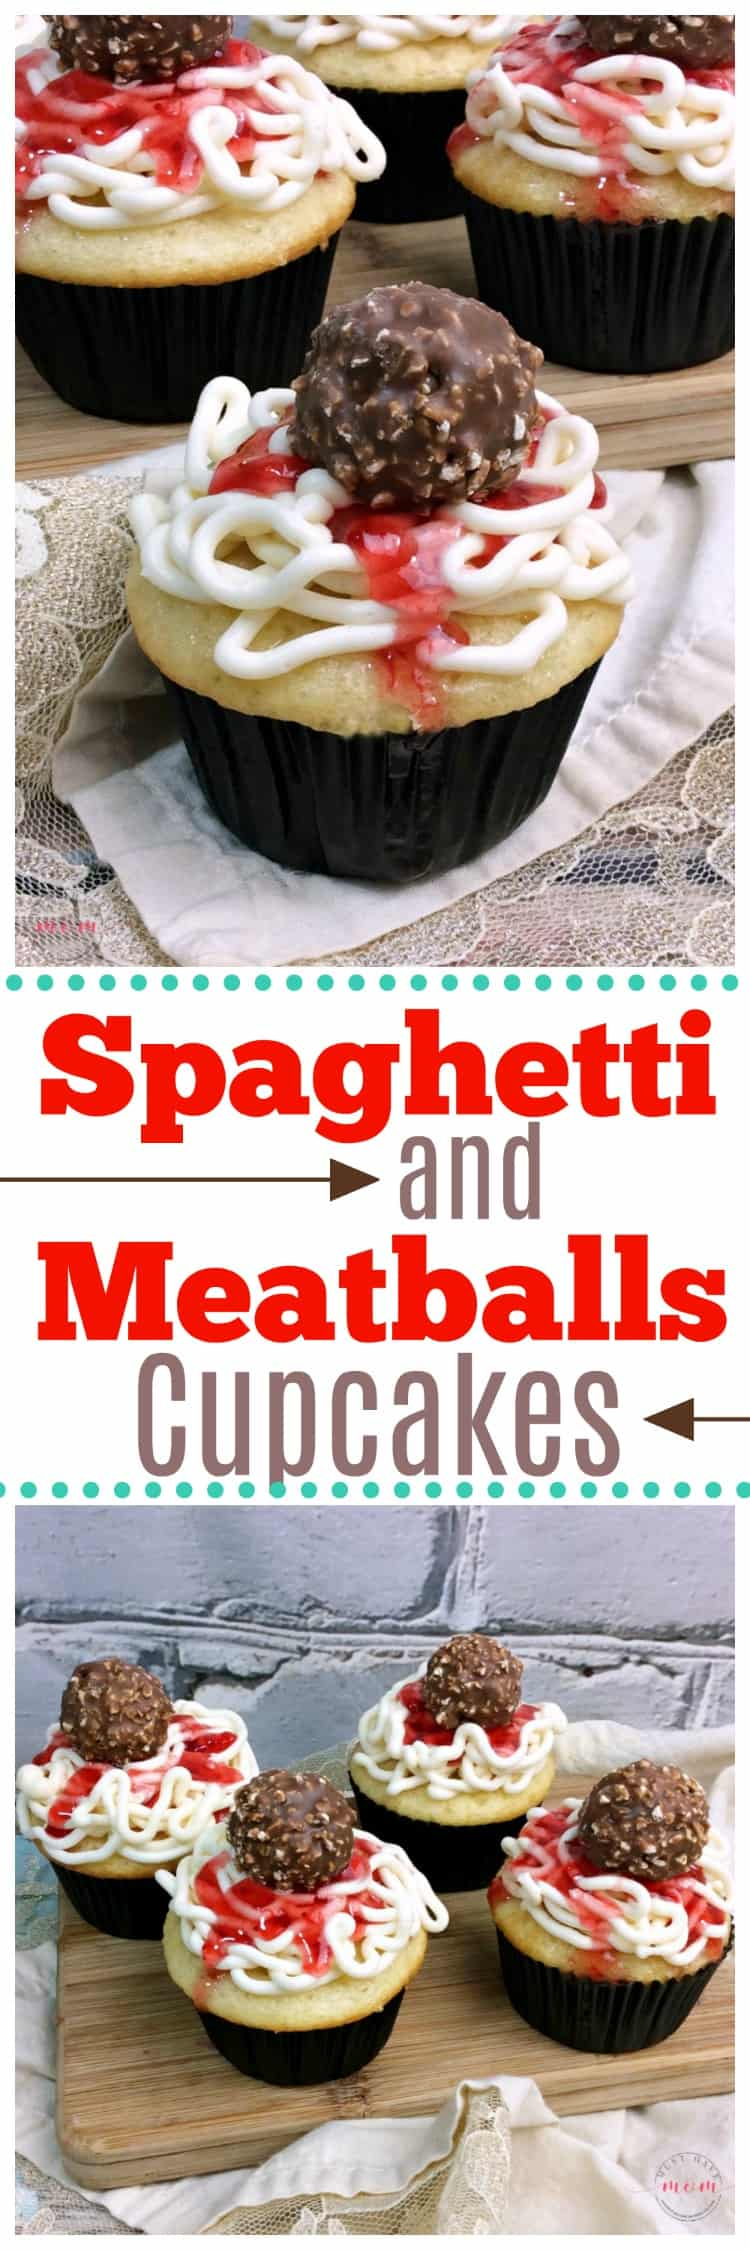 April Fool's Prank Spaghetti and Meatball Cupcakes Recipe! Easy and fun way to trick the kids!